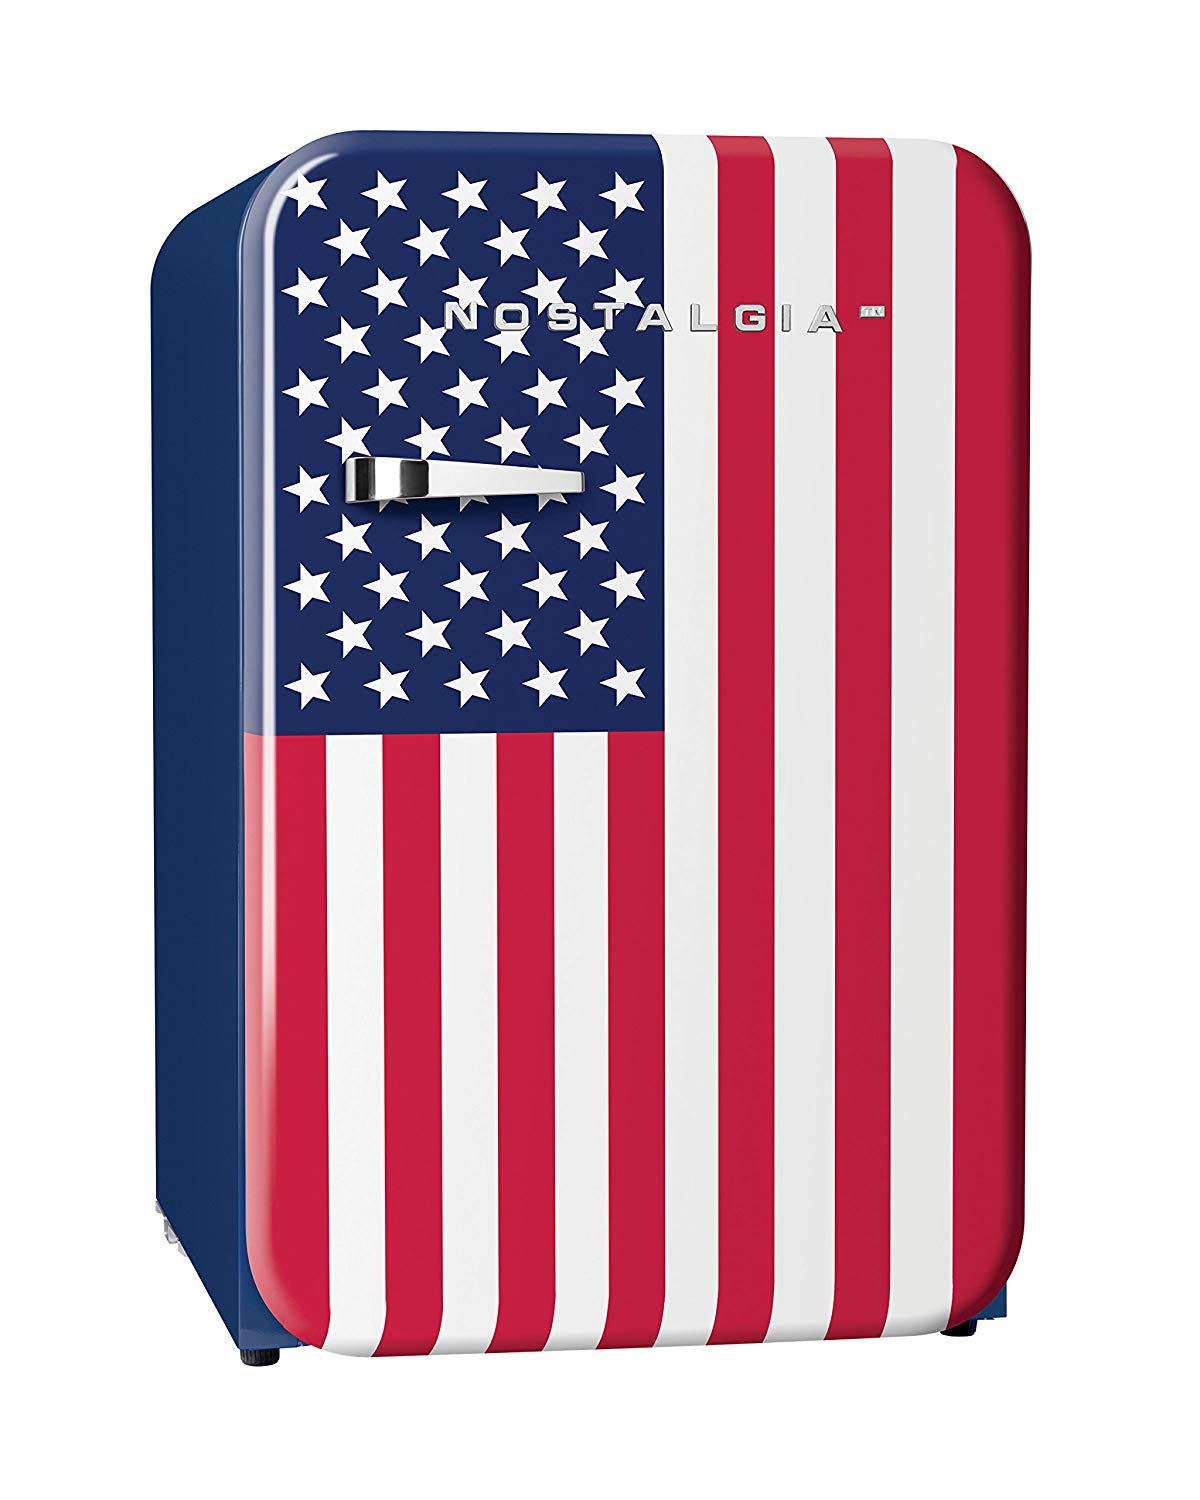 USA flag fridge